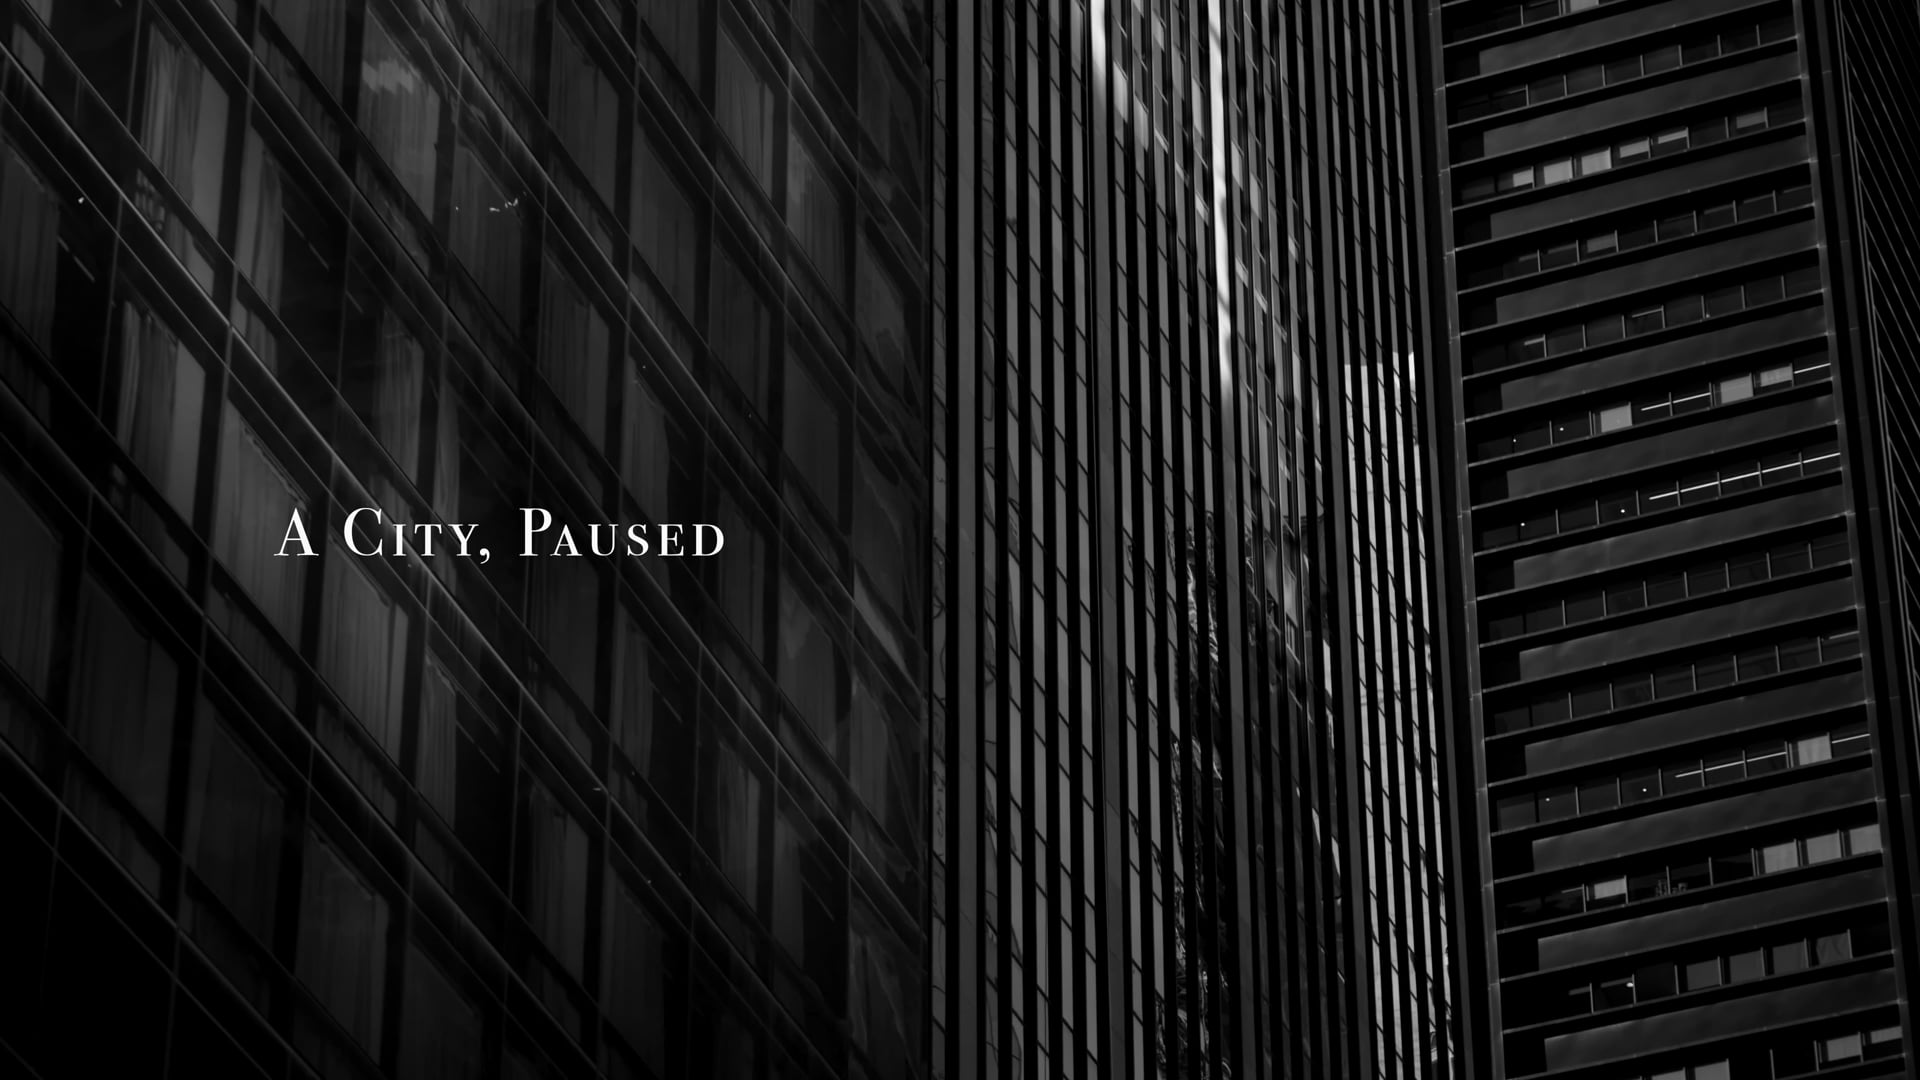 A City, Paused